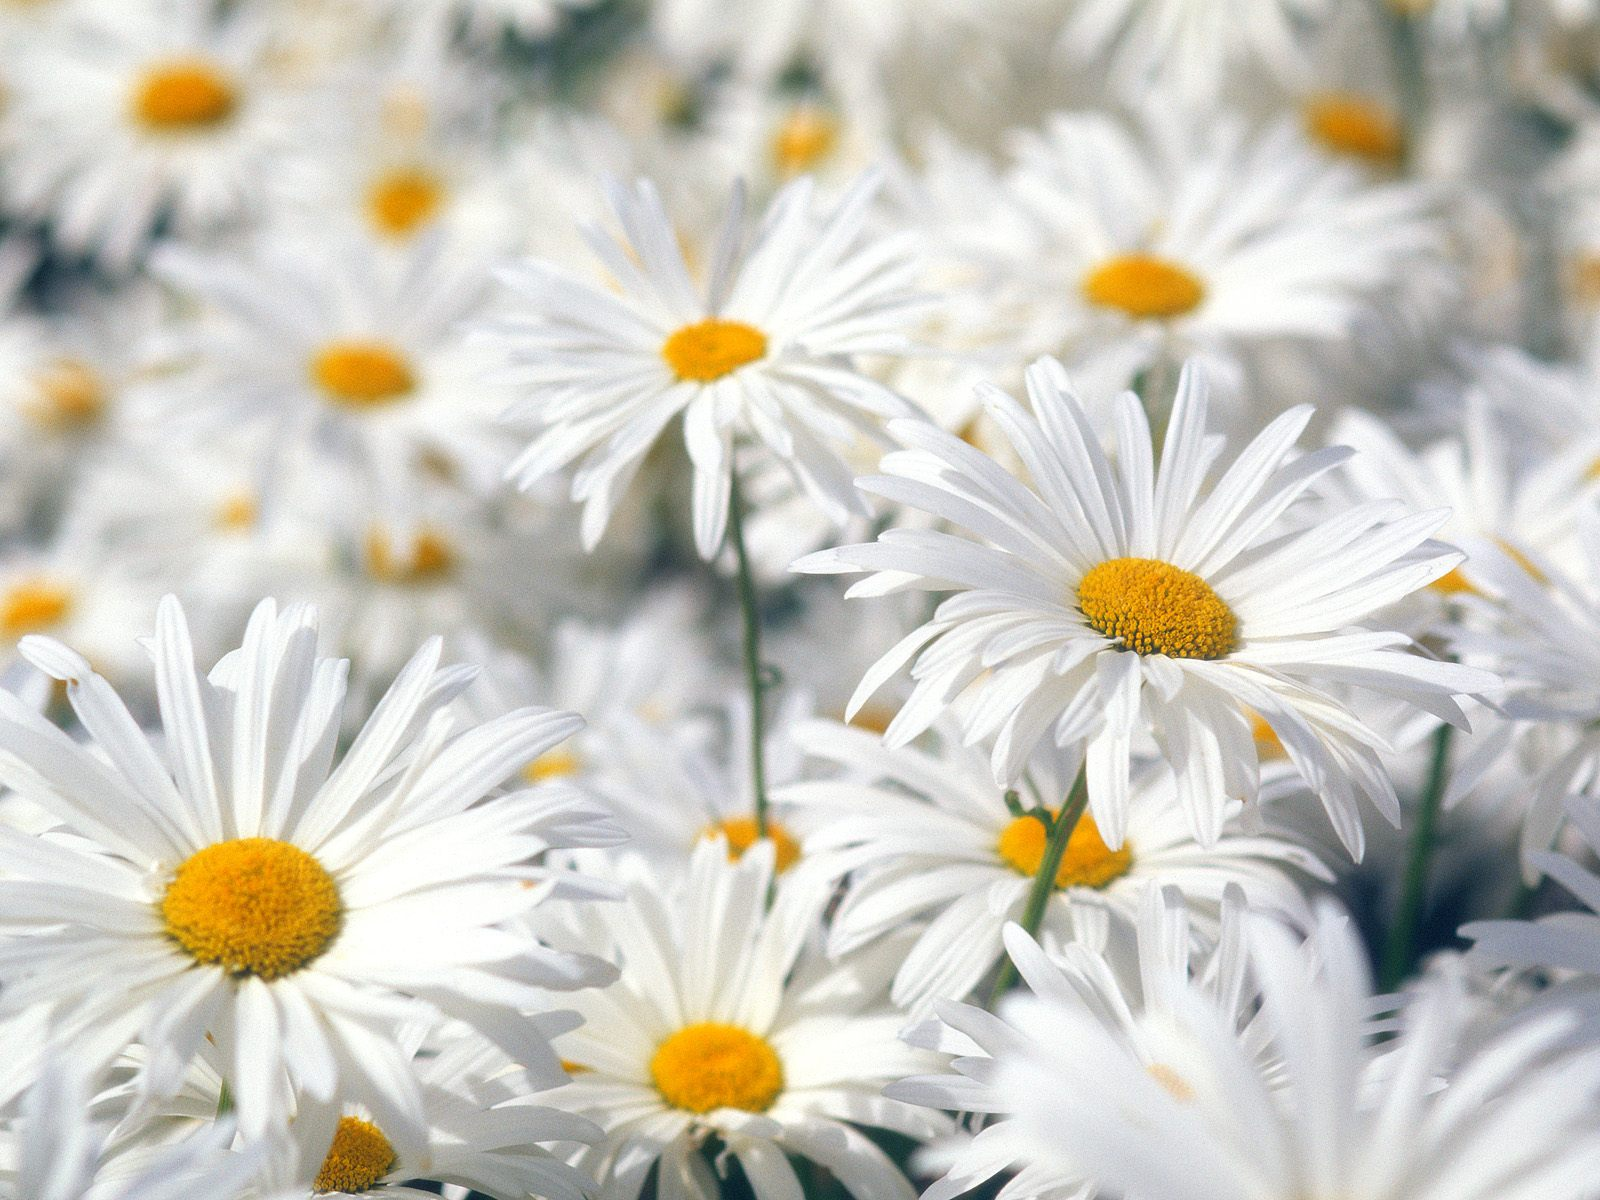 Plentiful Oxeye Daisies Wallpapers HD Wallpapers 1600x1200